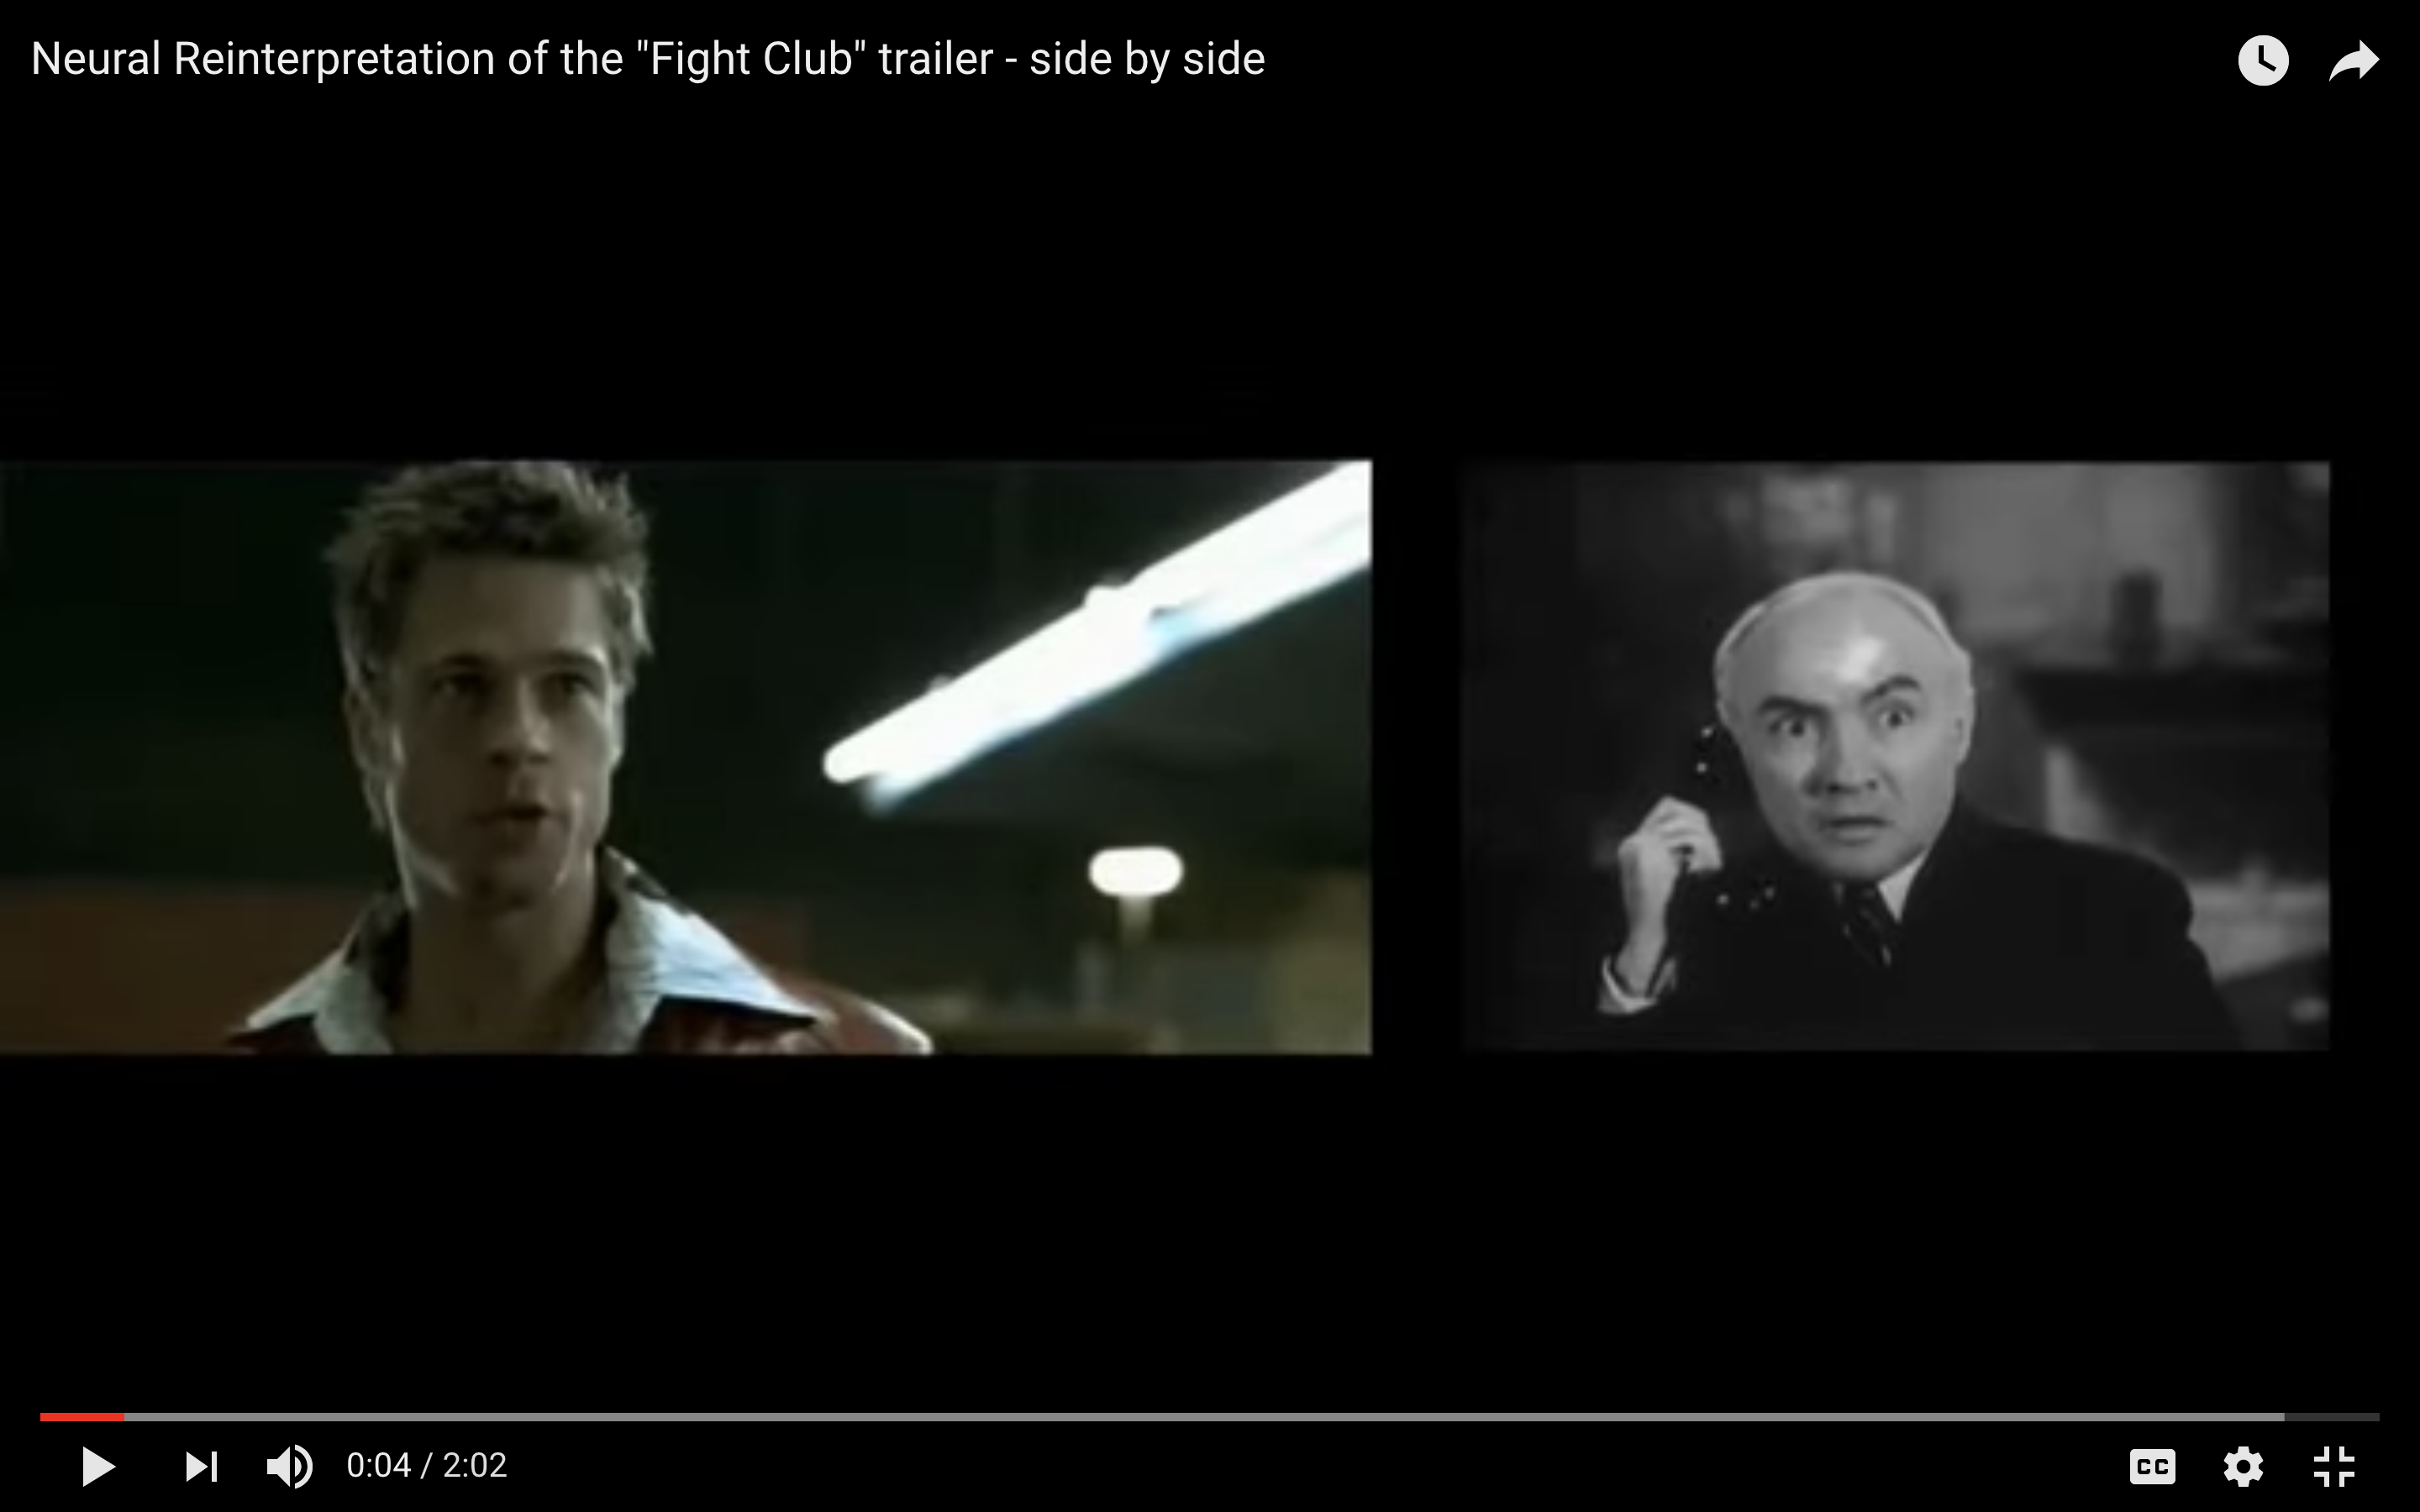 On the left is a shot of Brad Pitt from Fight Club; on the right is a man holding a telephone with a similar expression from the archive footage.